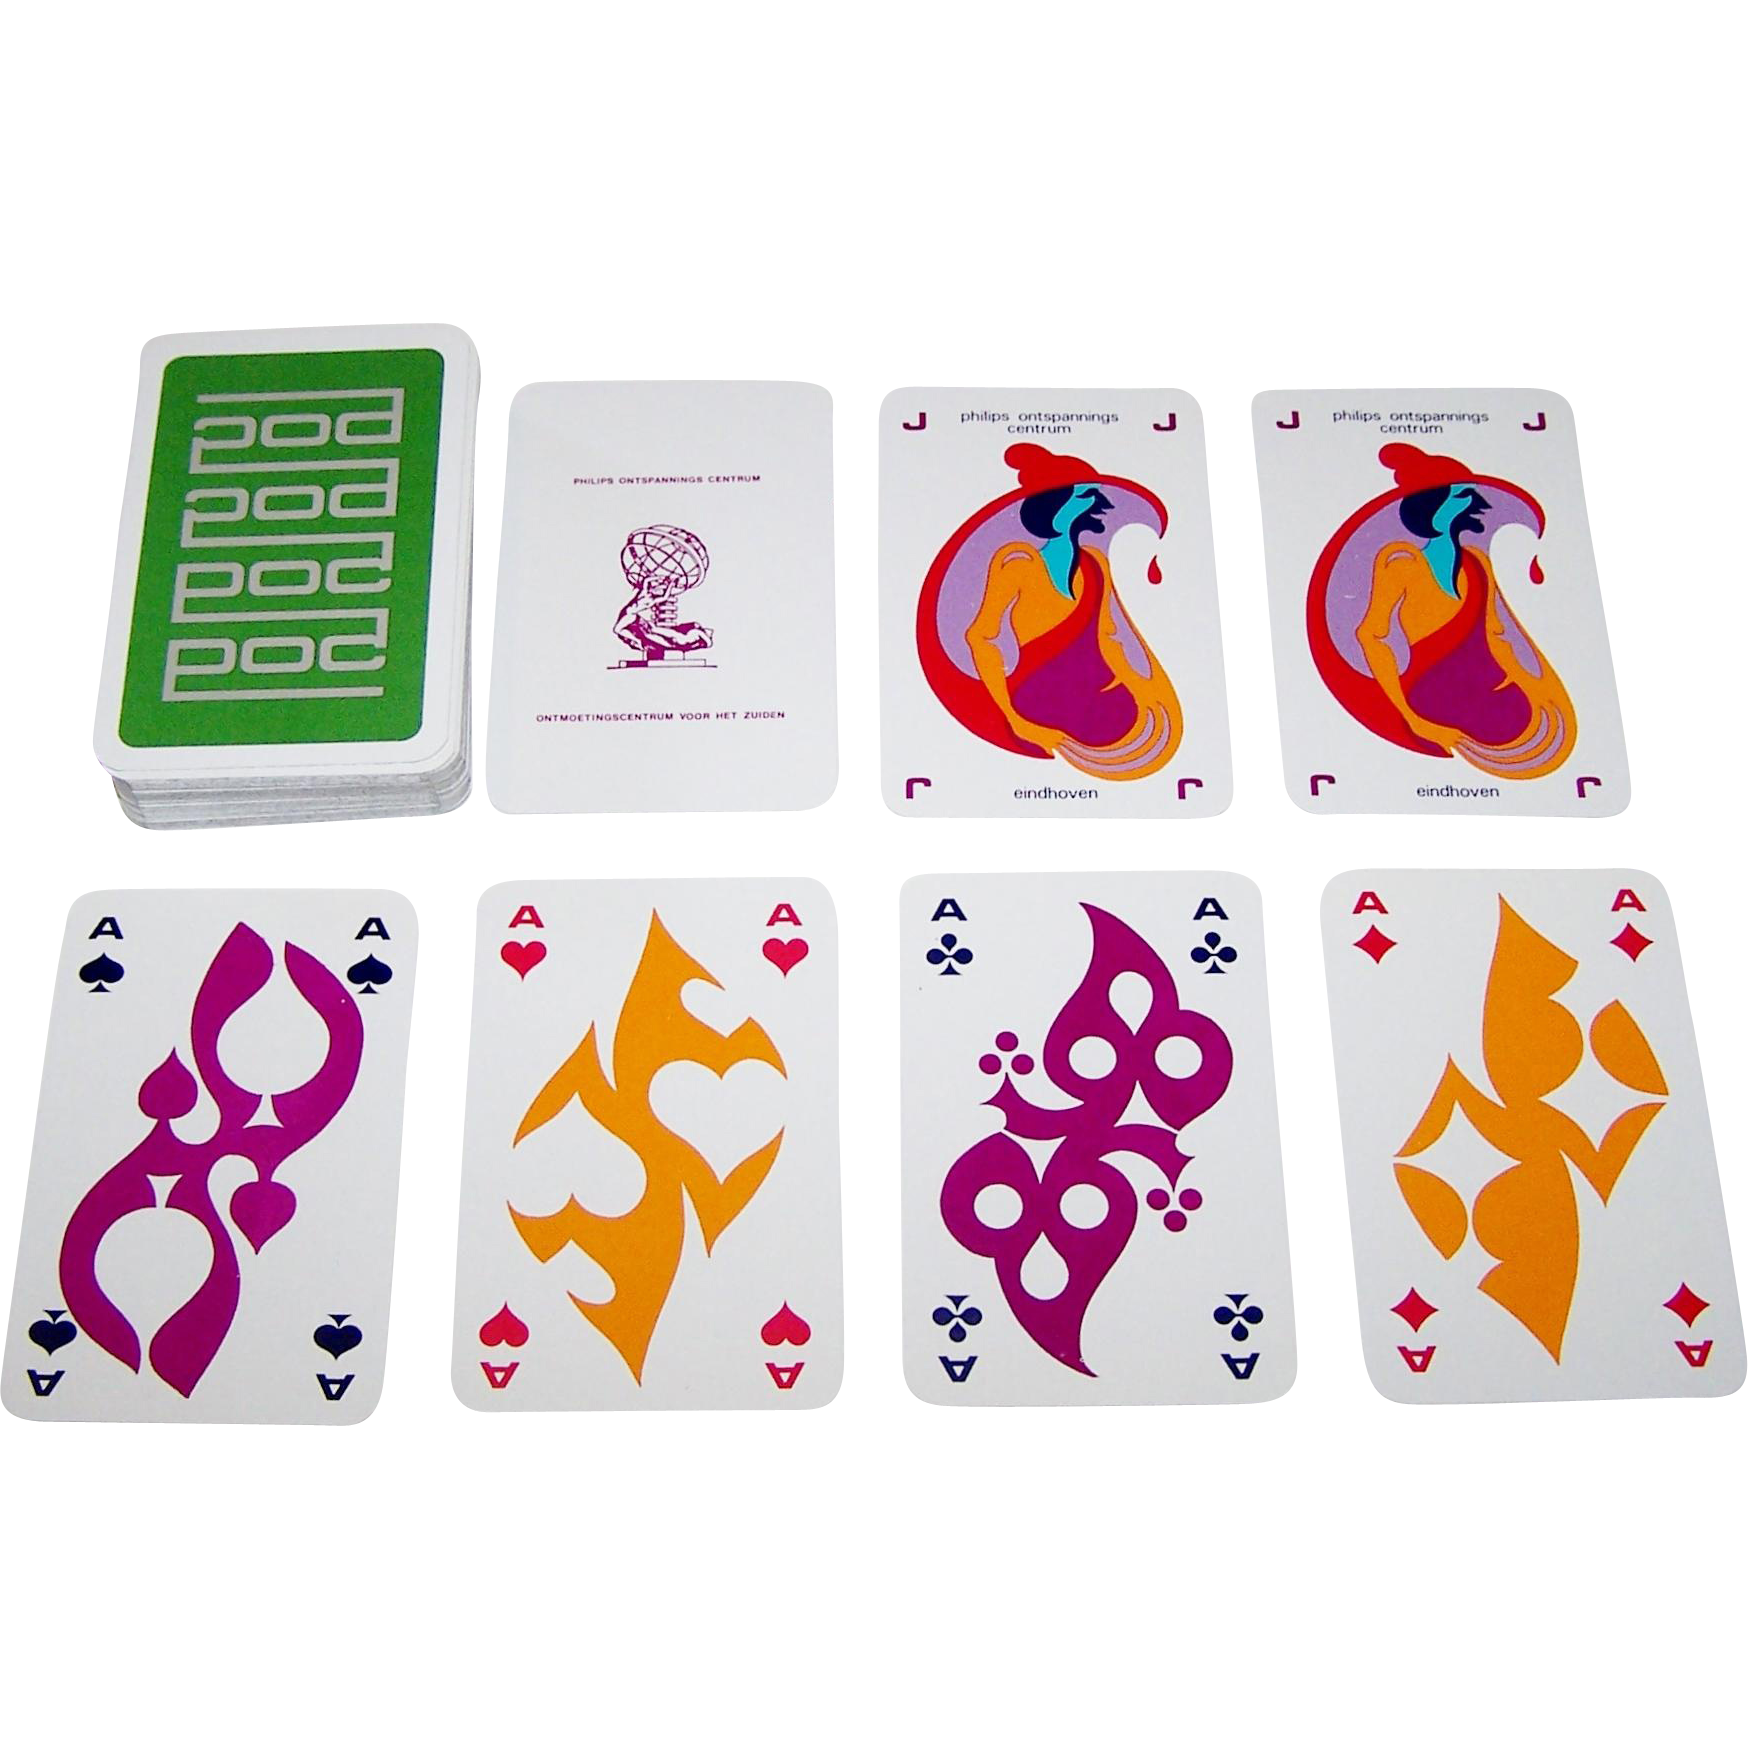 "Carta Mundi ""Philips Ontspannings Centrum"" (""Philips Relaxation Center"") Playing Cards, c.1971"